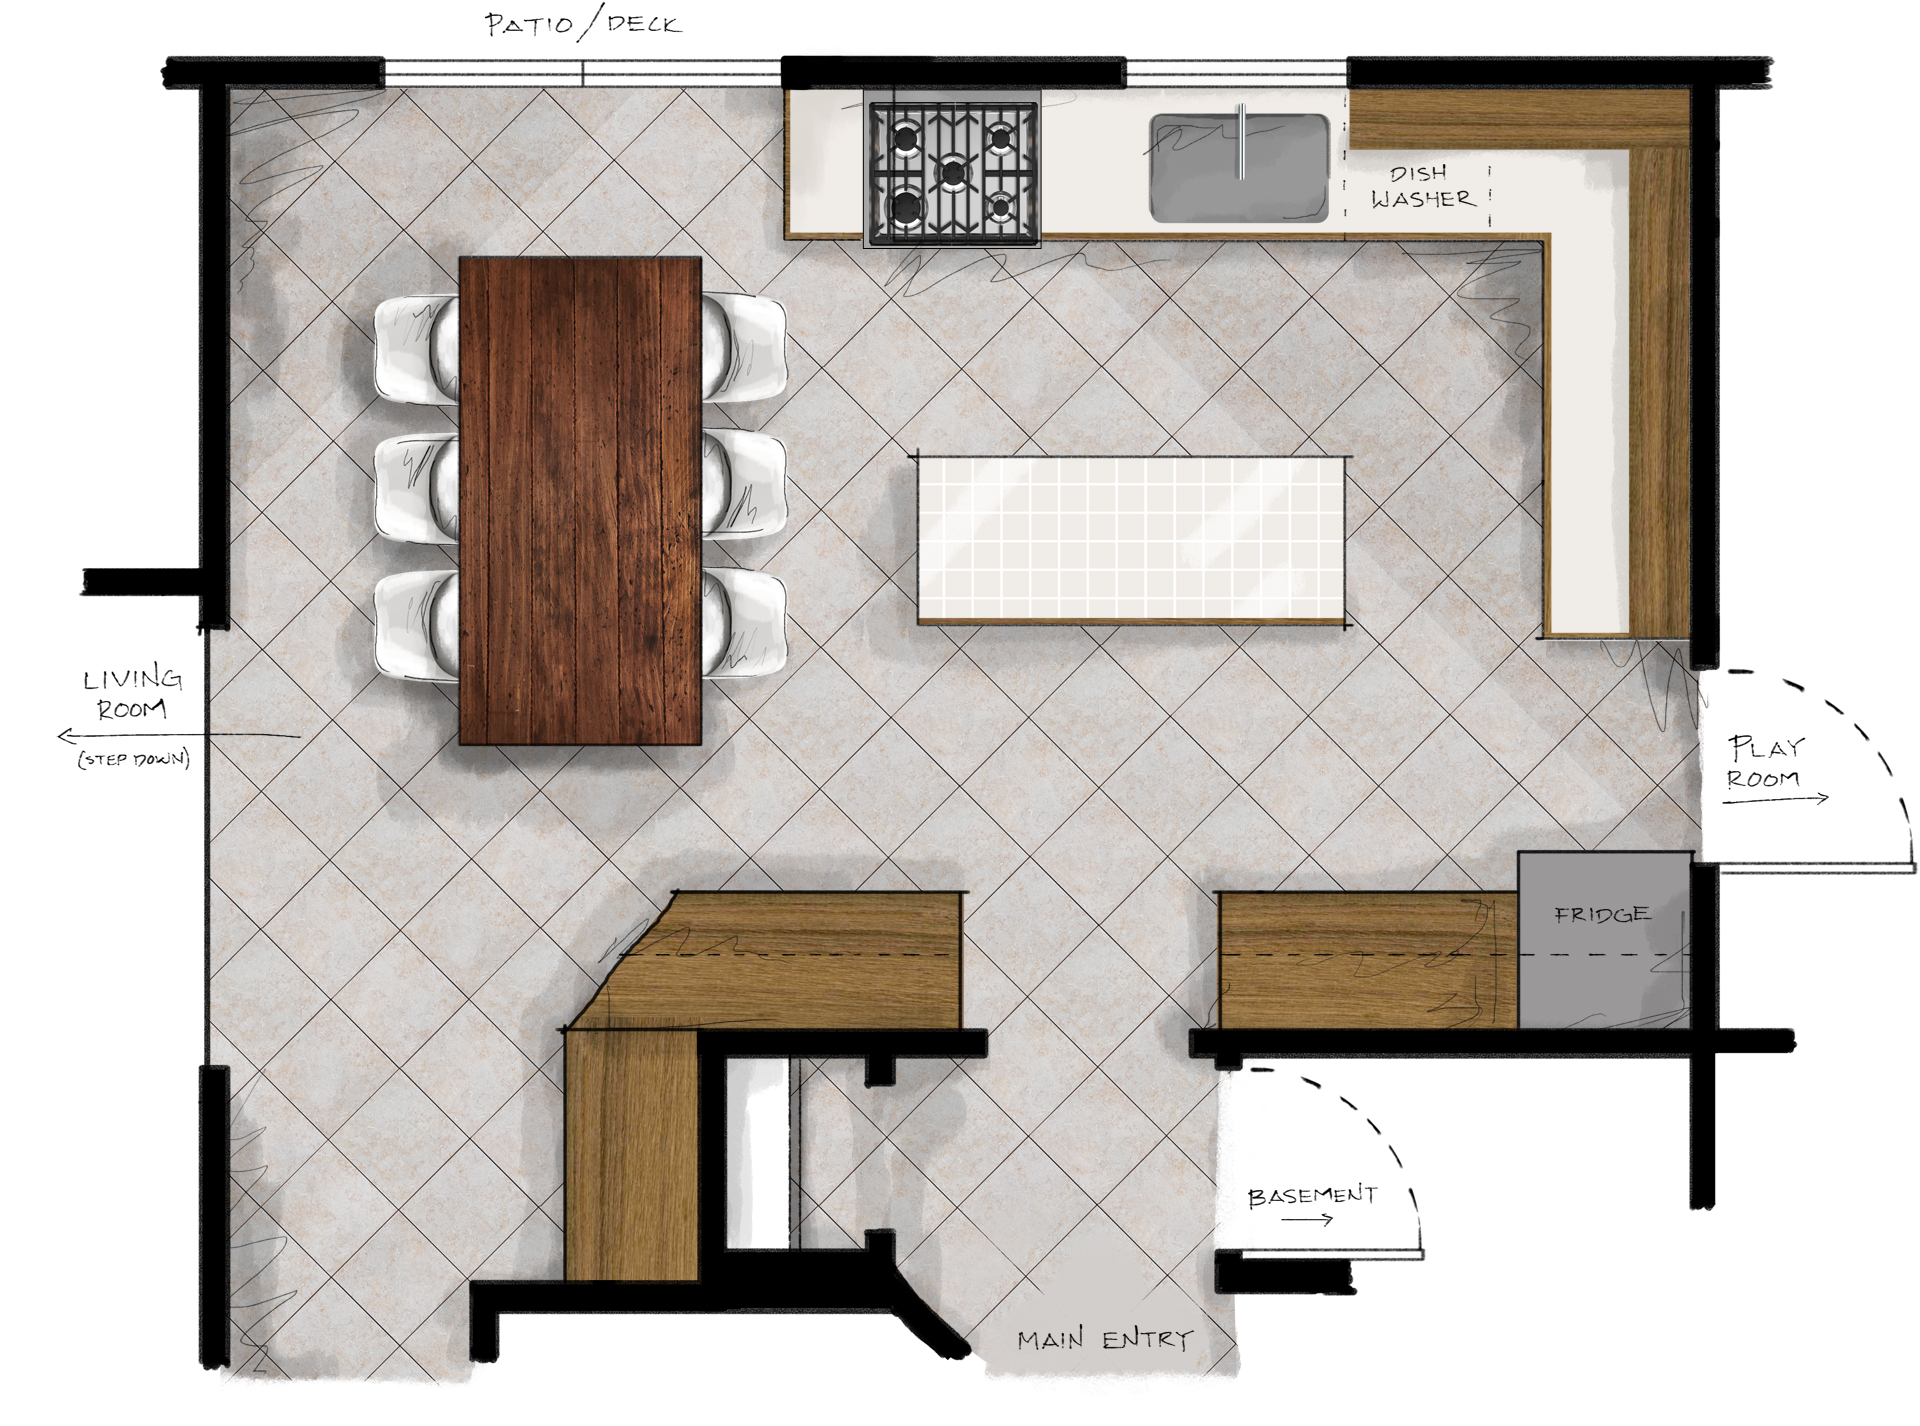 New kitchen plans making nice in the midwest for Planning a kitchen layout